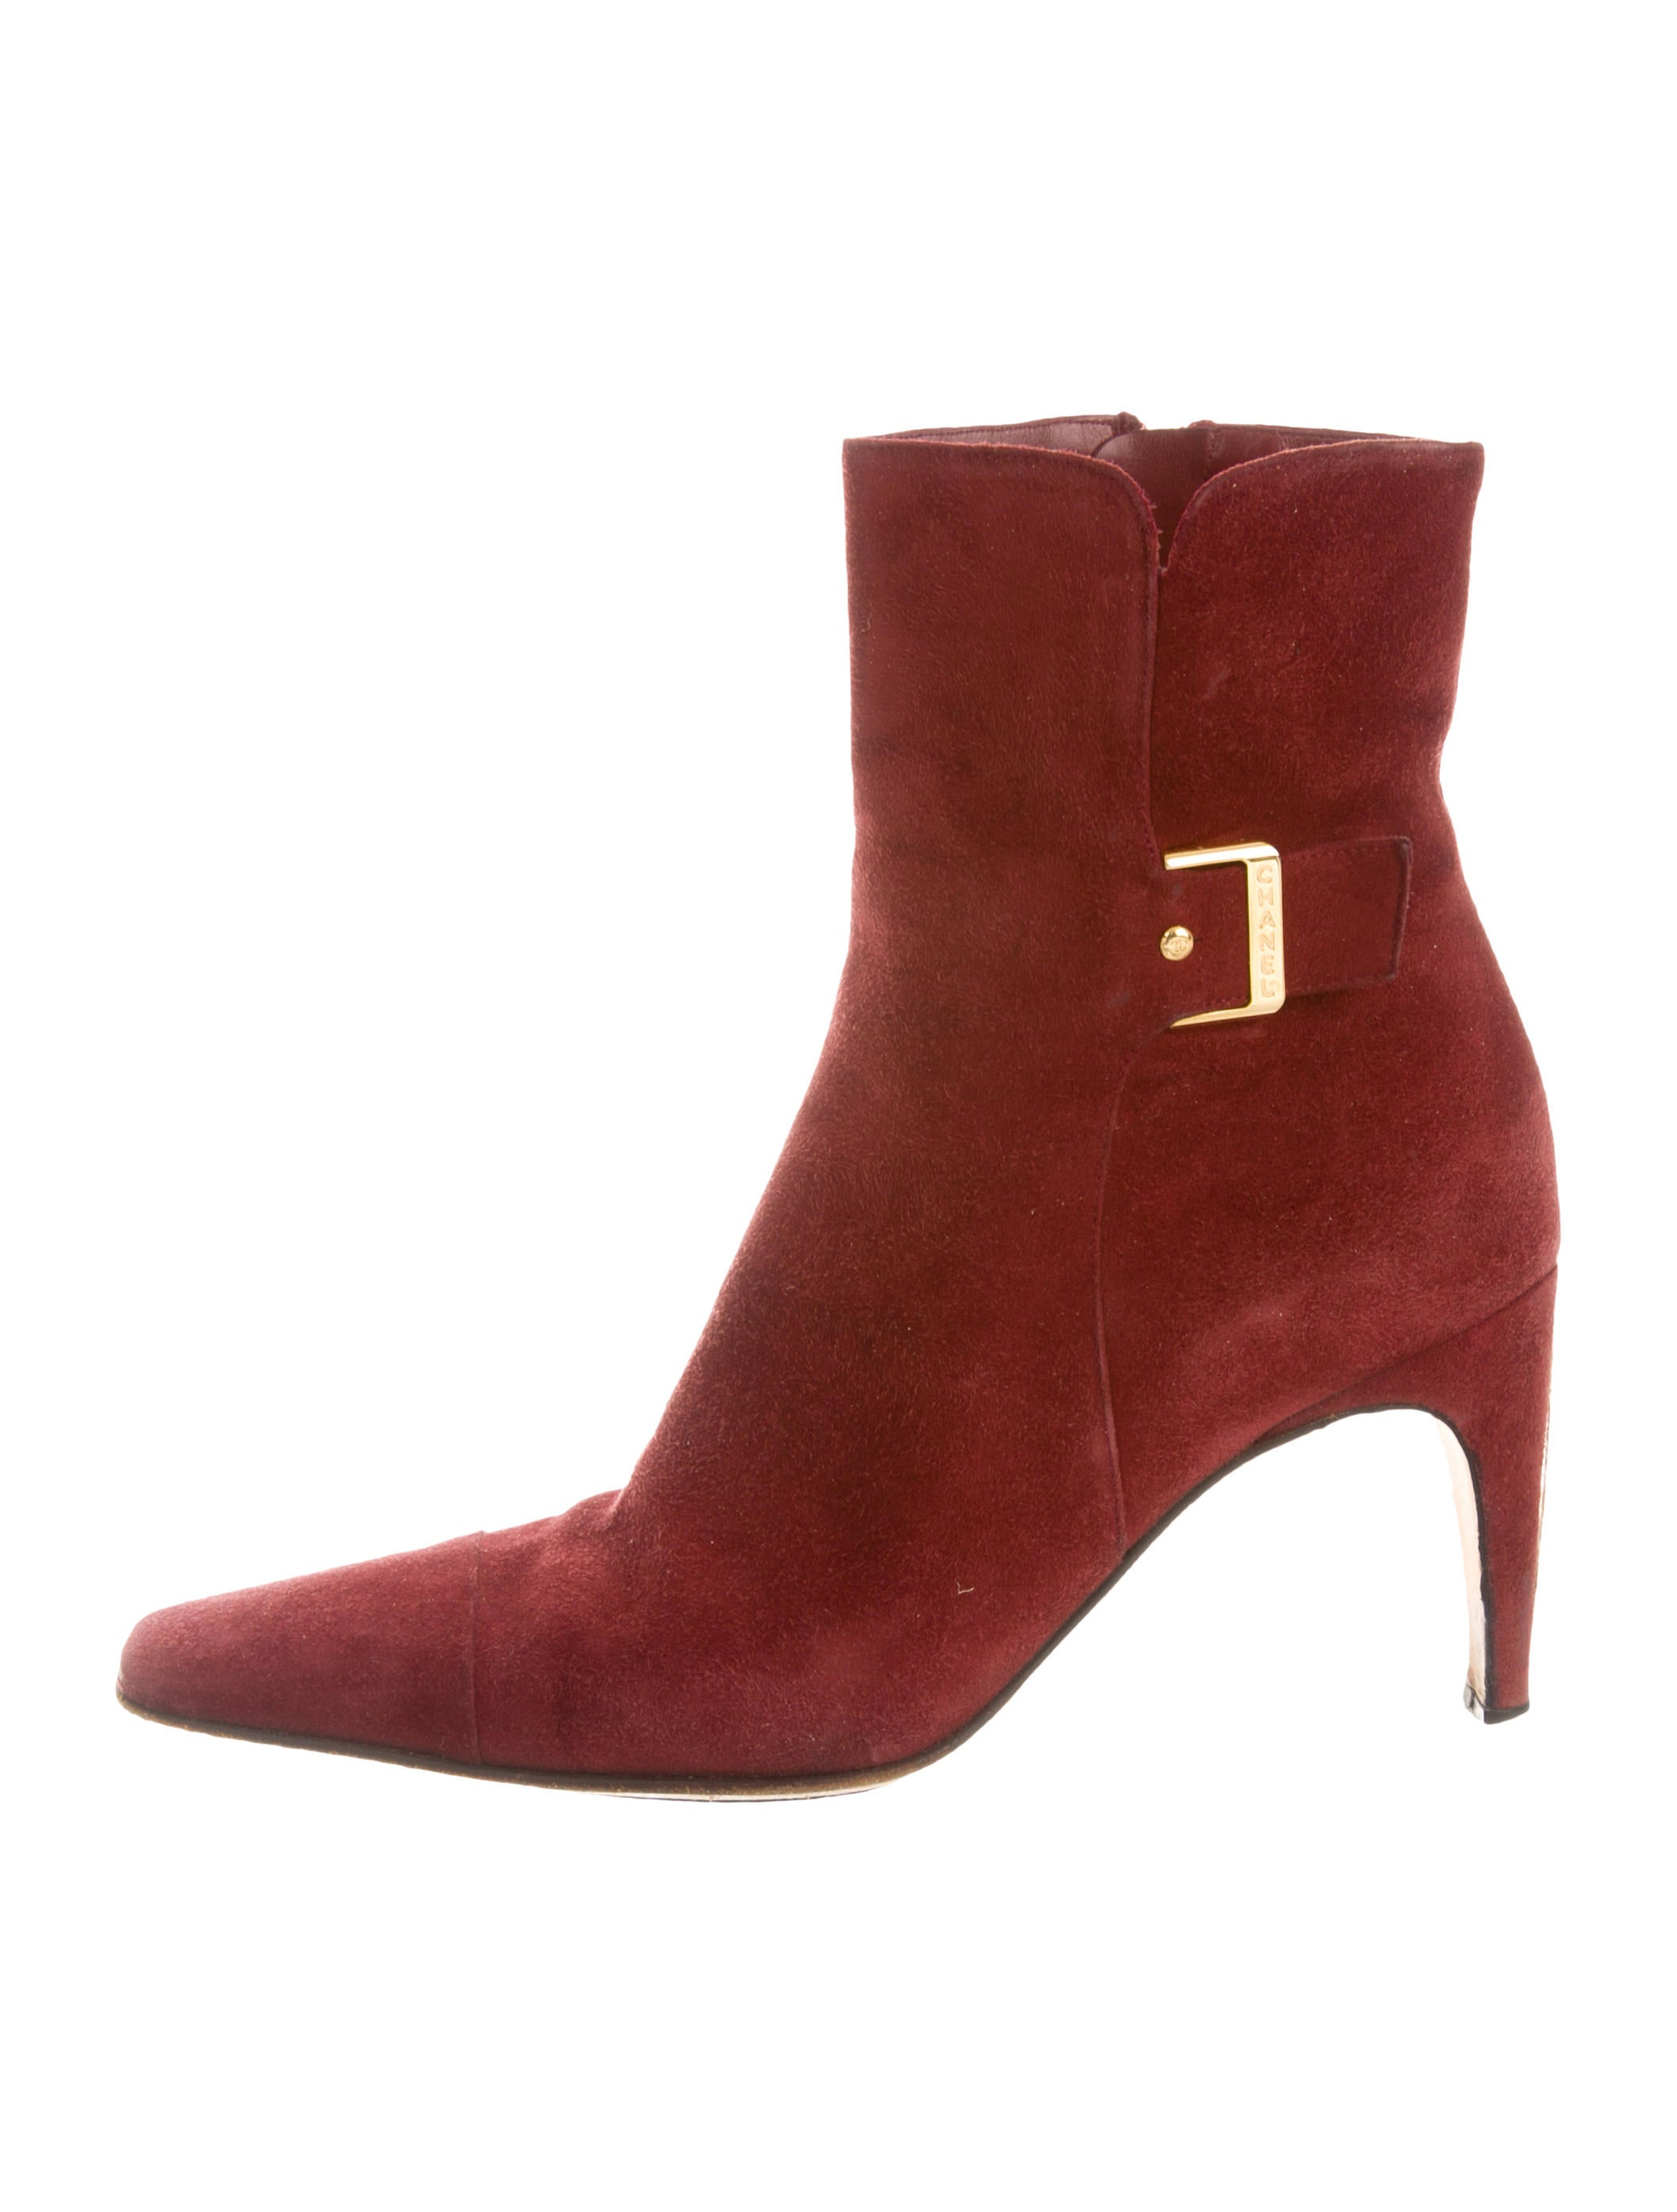 chanel suede buckle embellished ankle boots shoes